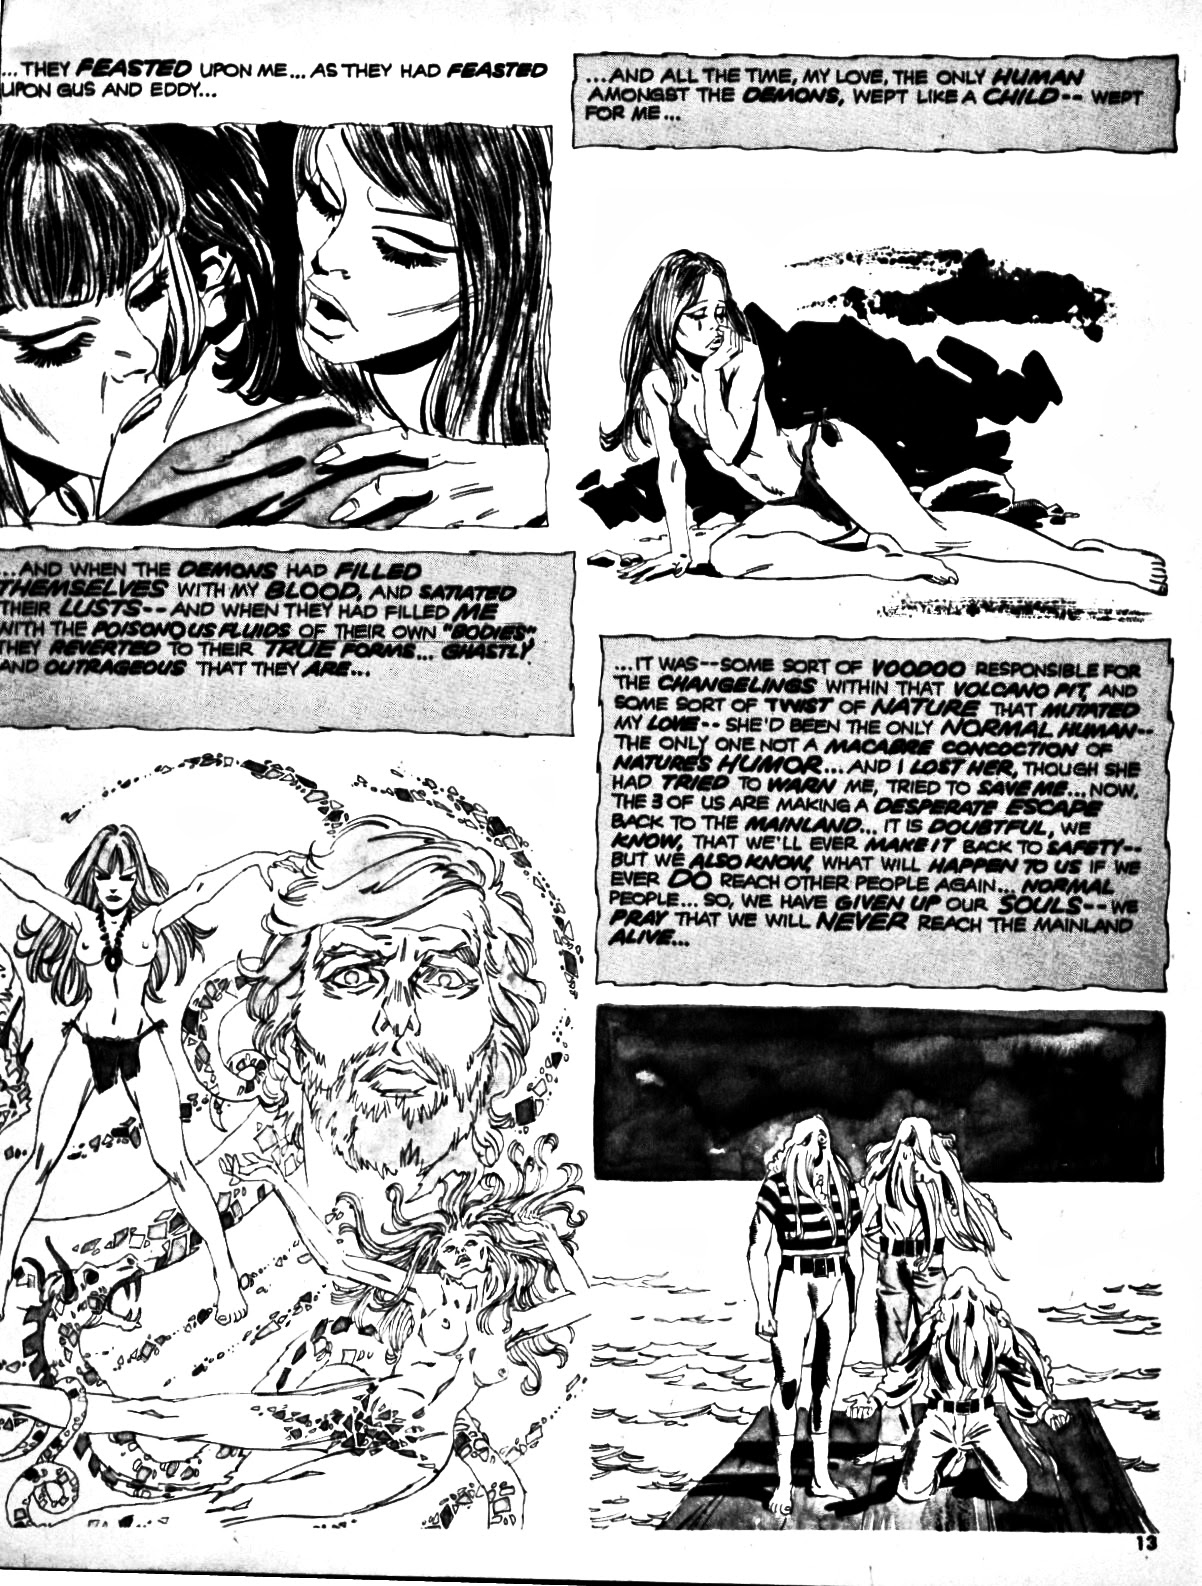 Scream (1973) issue 7 - Page 13